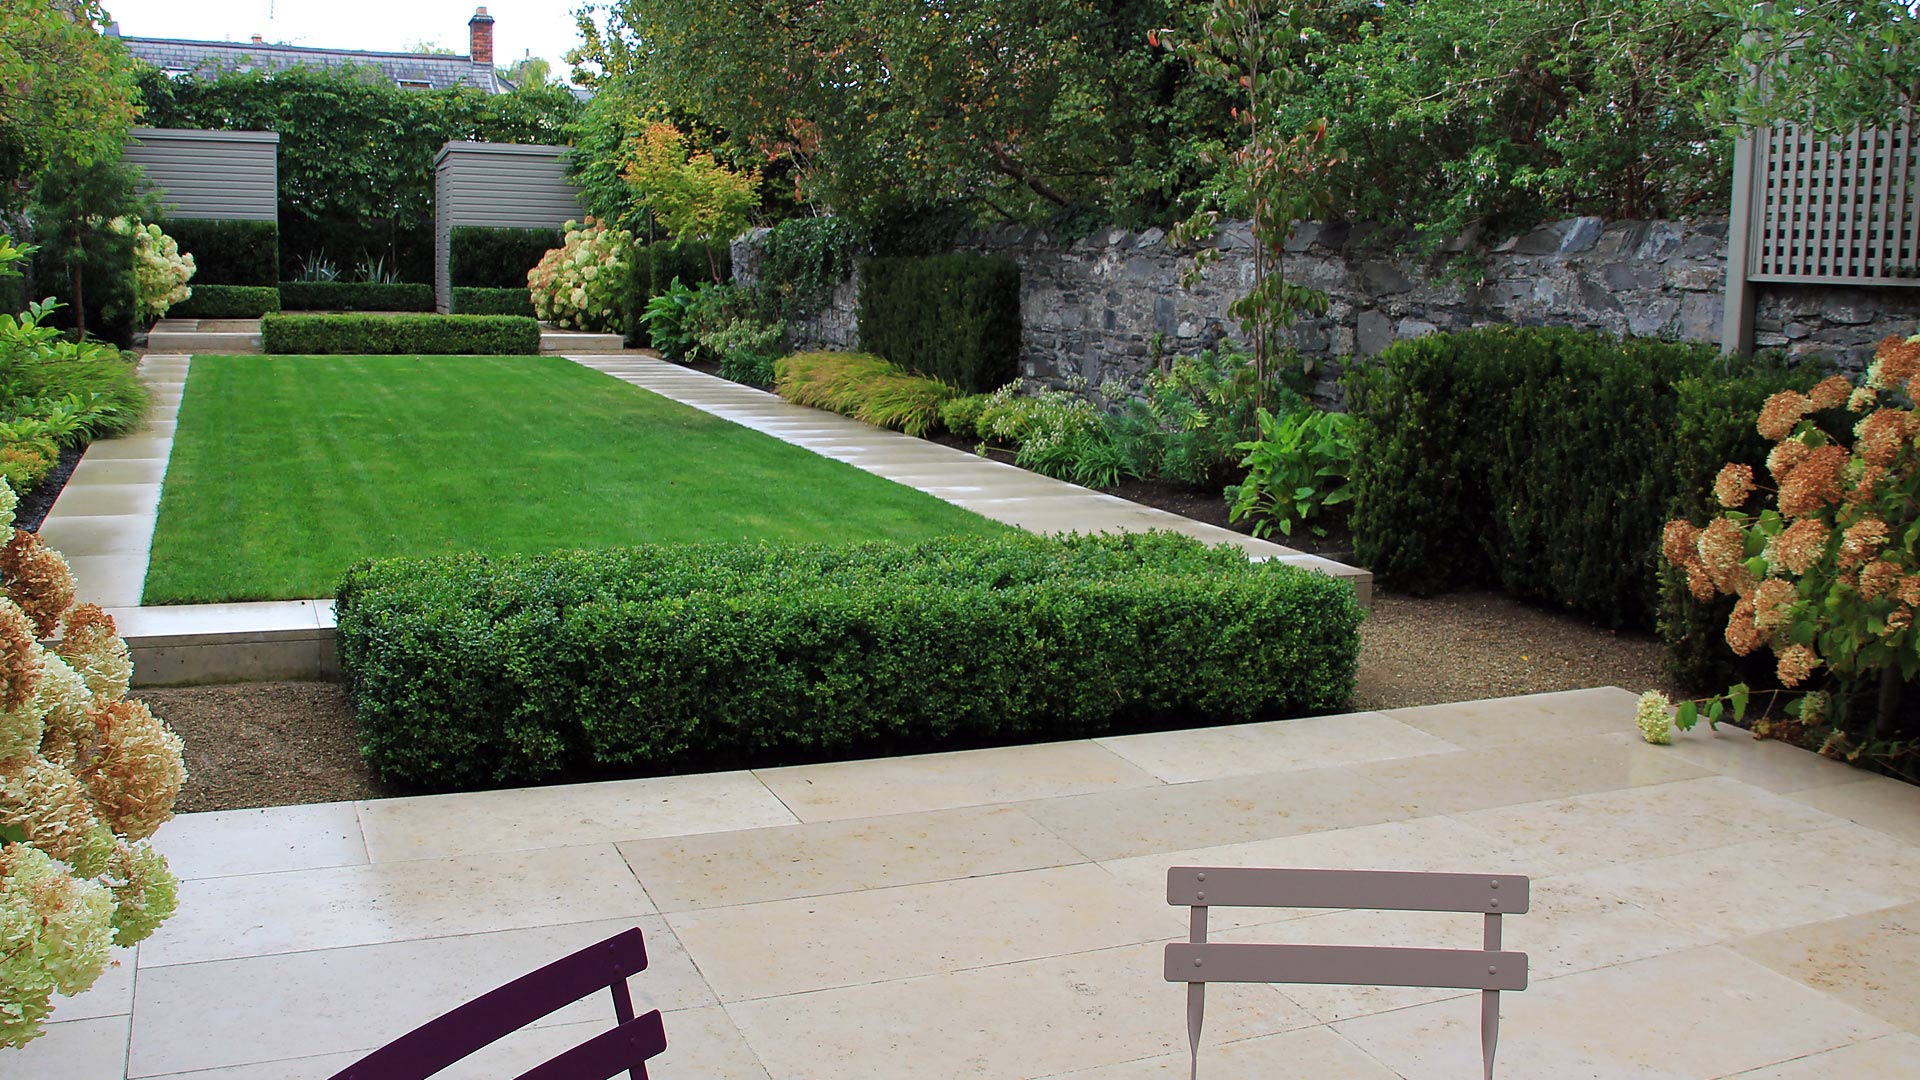 1000 images about trethewey contemporary lawn on for Contemporary garden designs and ideas